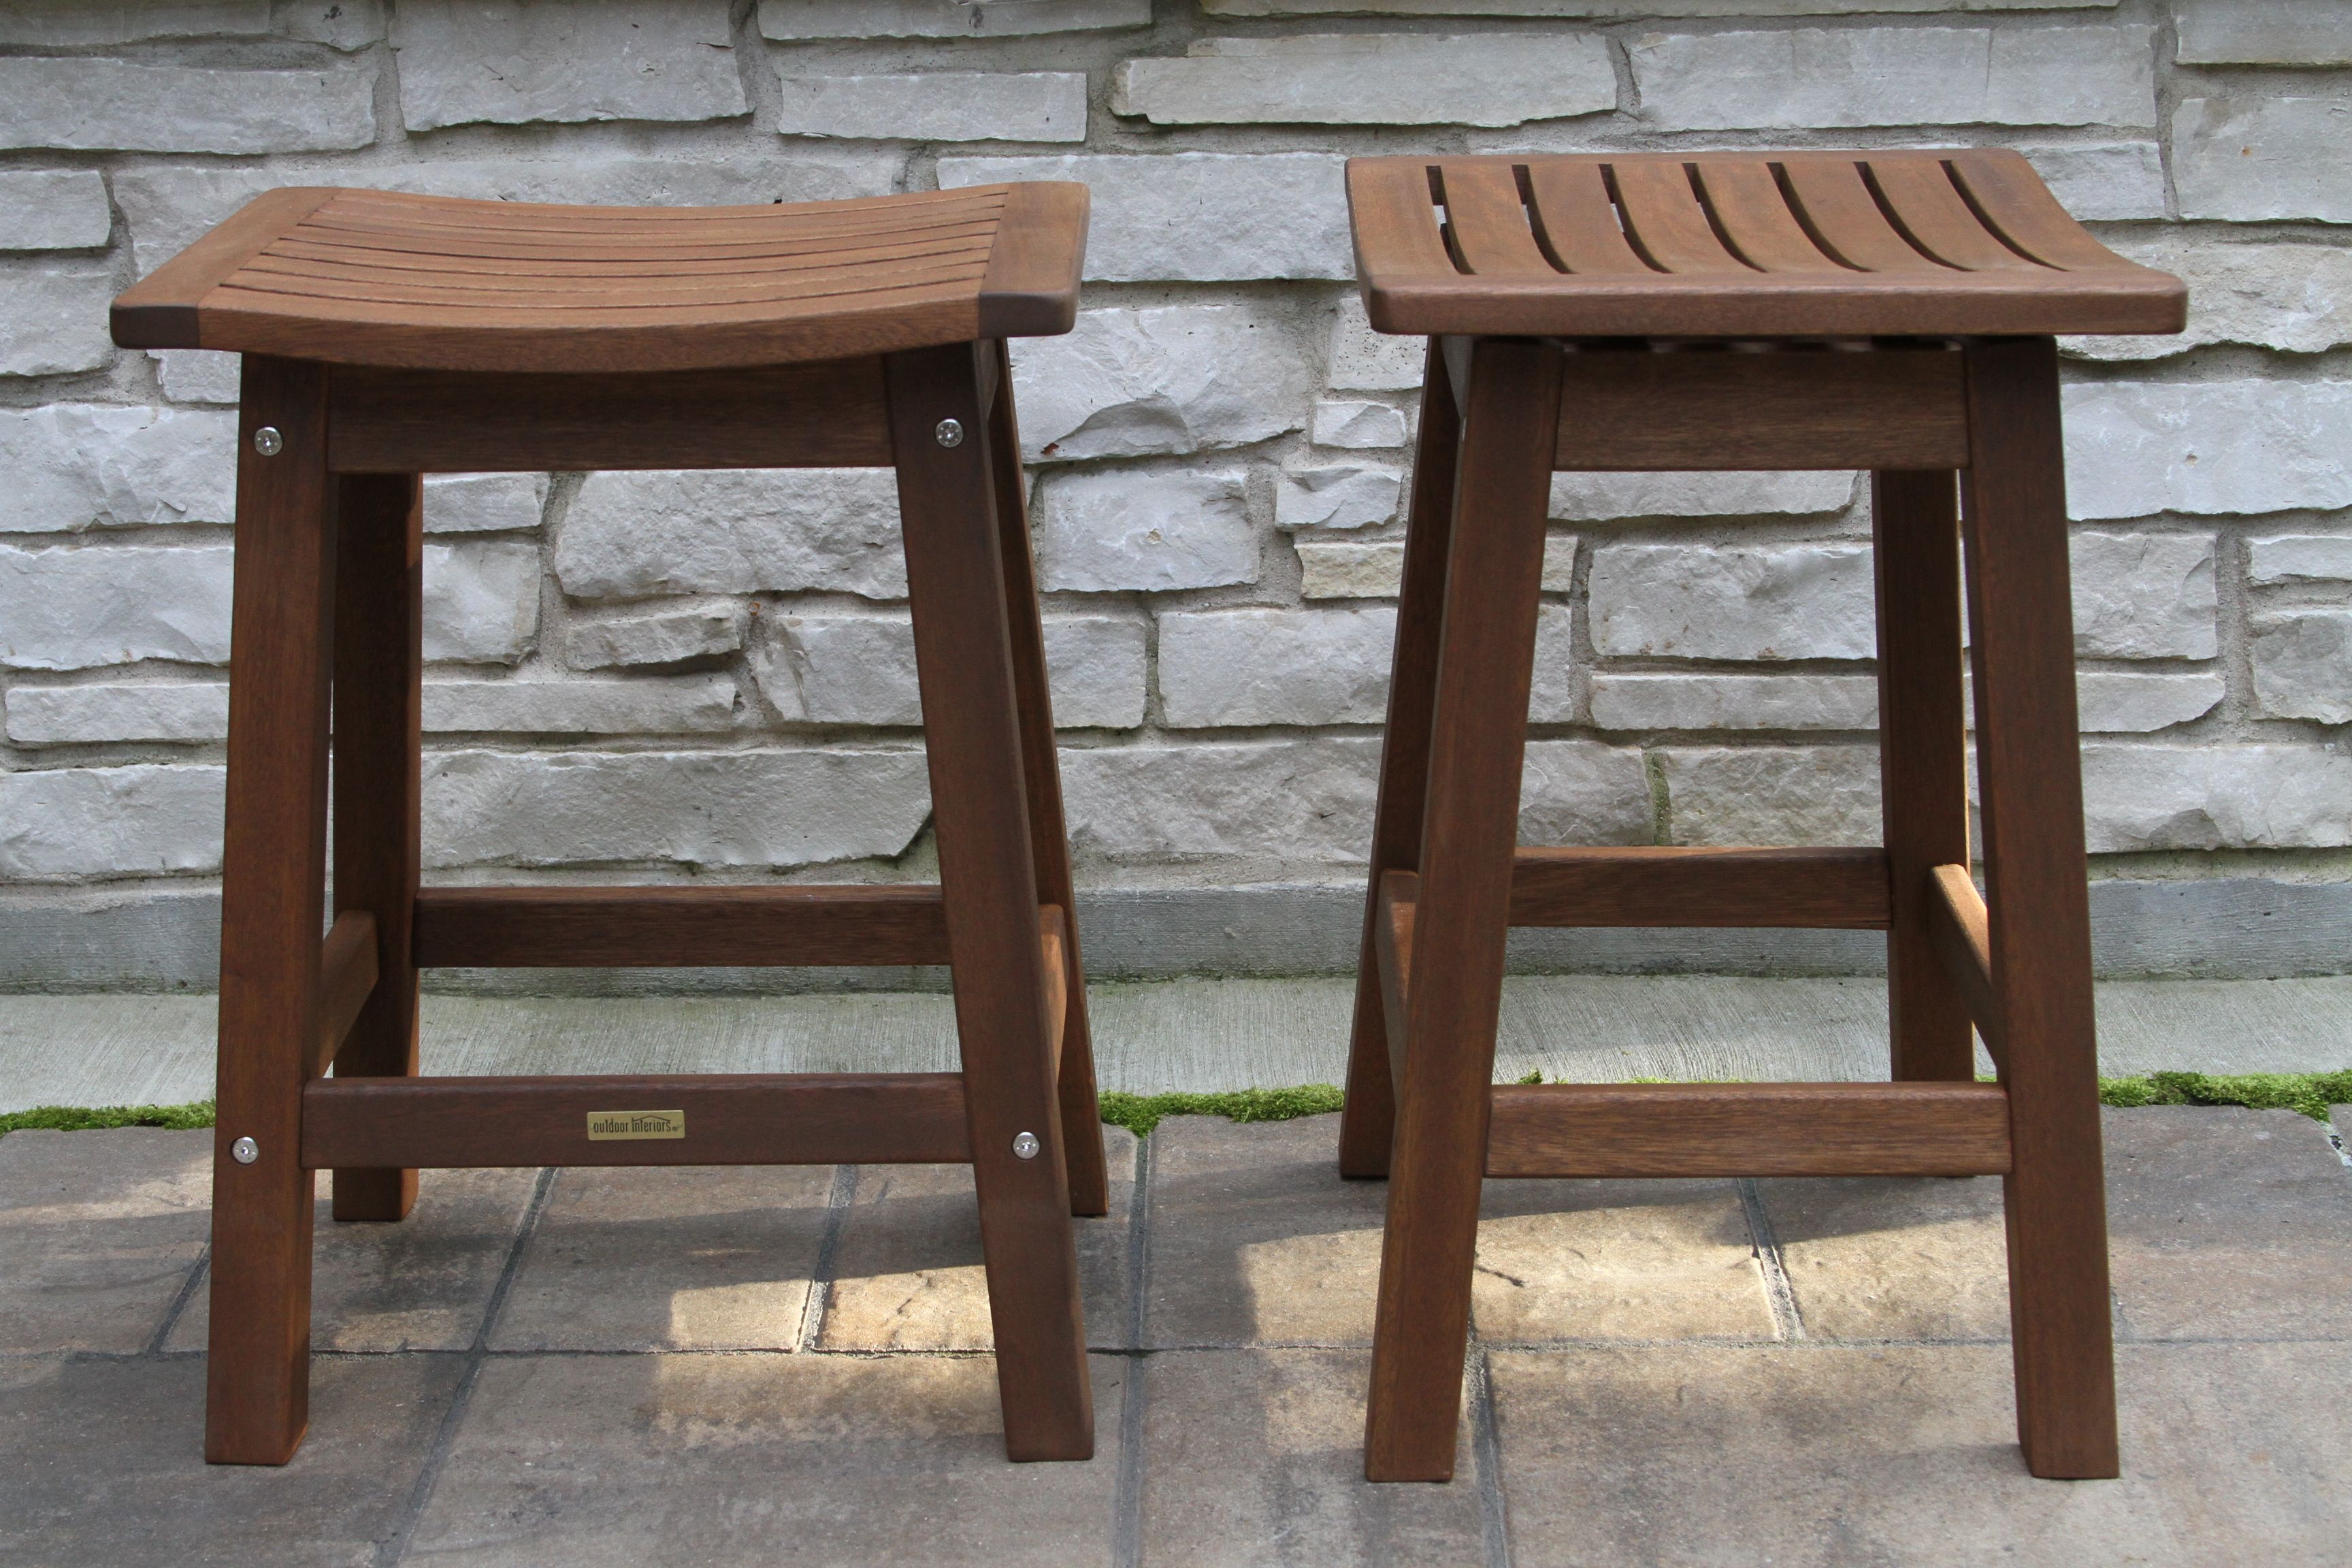 Pleasing Counter Height Eucalyptus Stools Outdoor Interiors Pdpeps Interior Chair Design Pdpepsorg